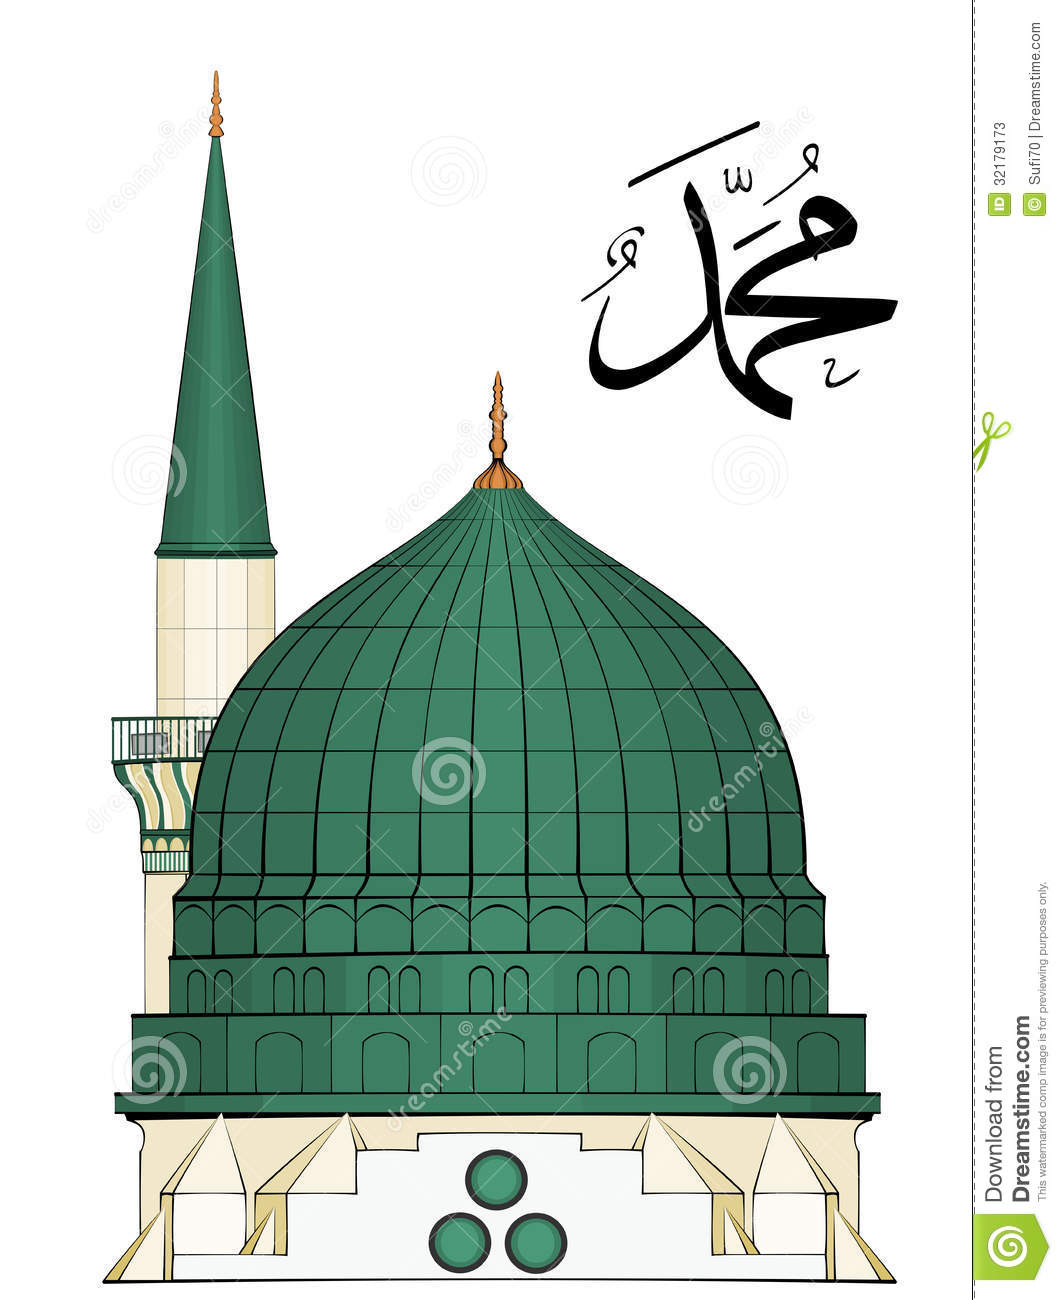 Mosque Al Masjid Nabawi Medina Stock Illustrations 17 Mosque Al Masjid Nabawi Medina Stock Illustrations Vectors Clipart Dreamstime